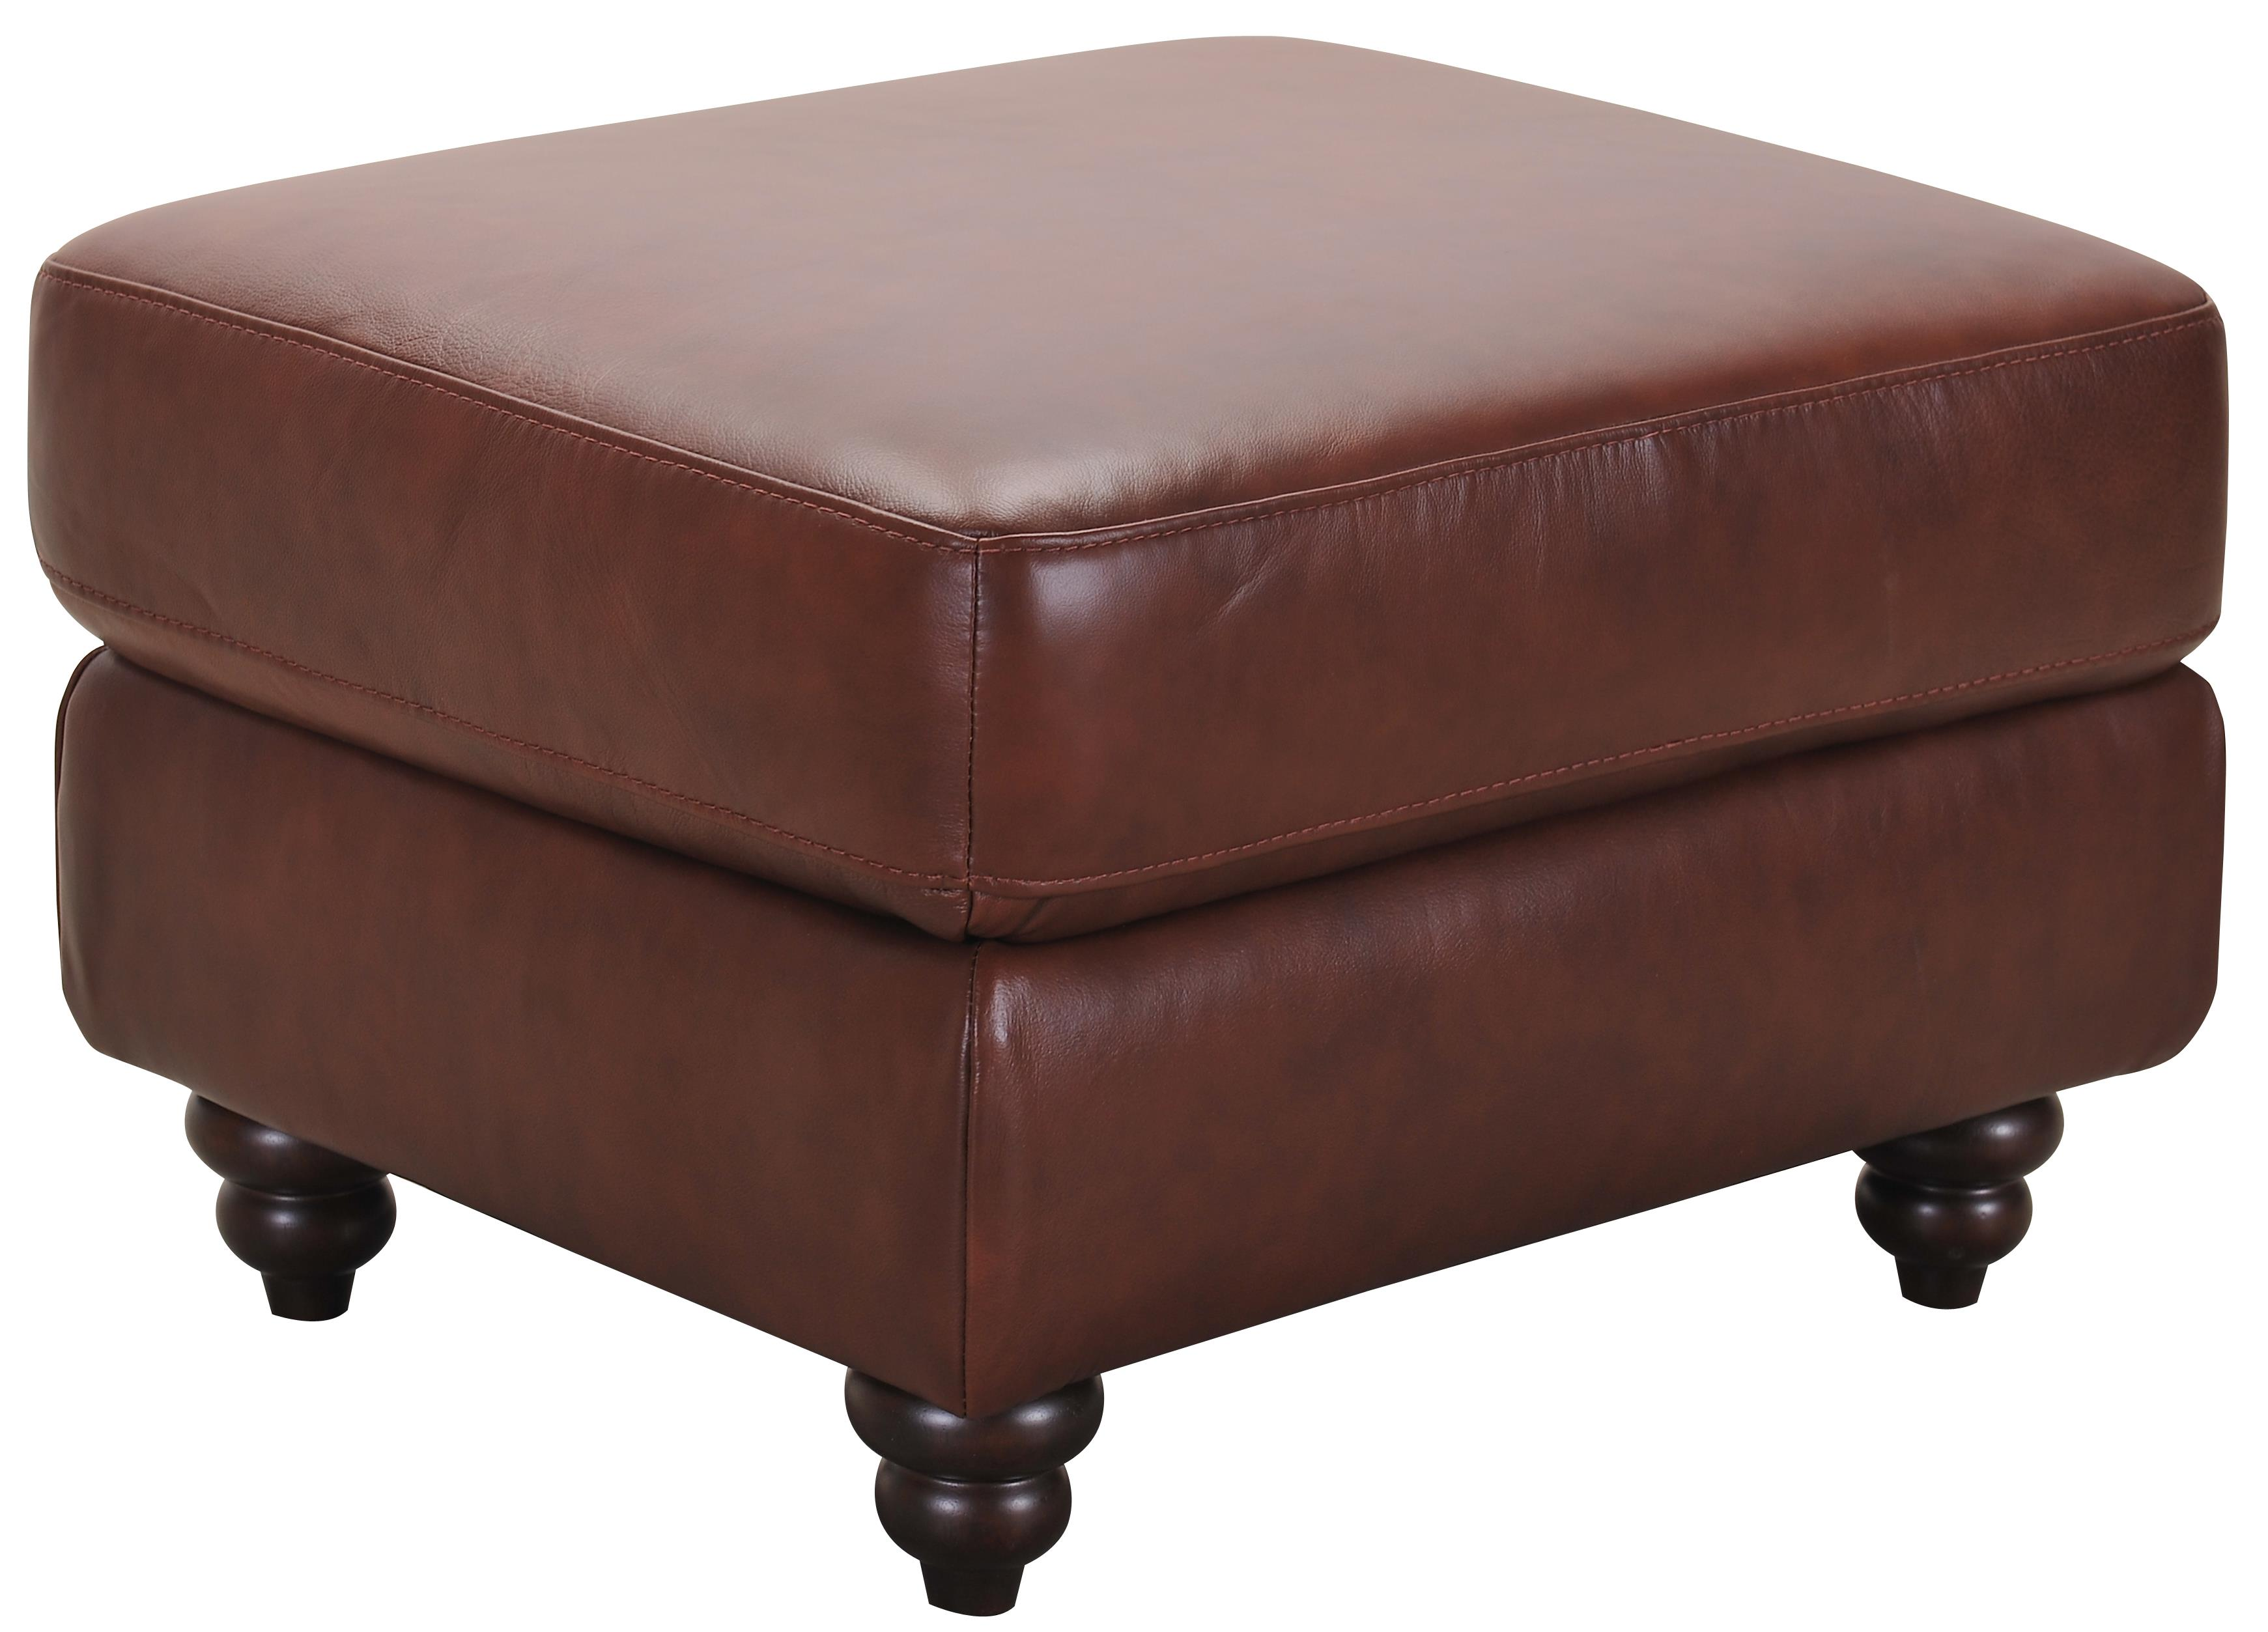 Belfort Select Grady Leather Ottoman  - Item Number: ST3508